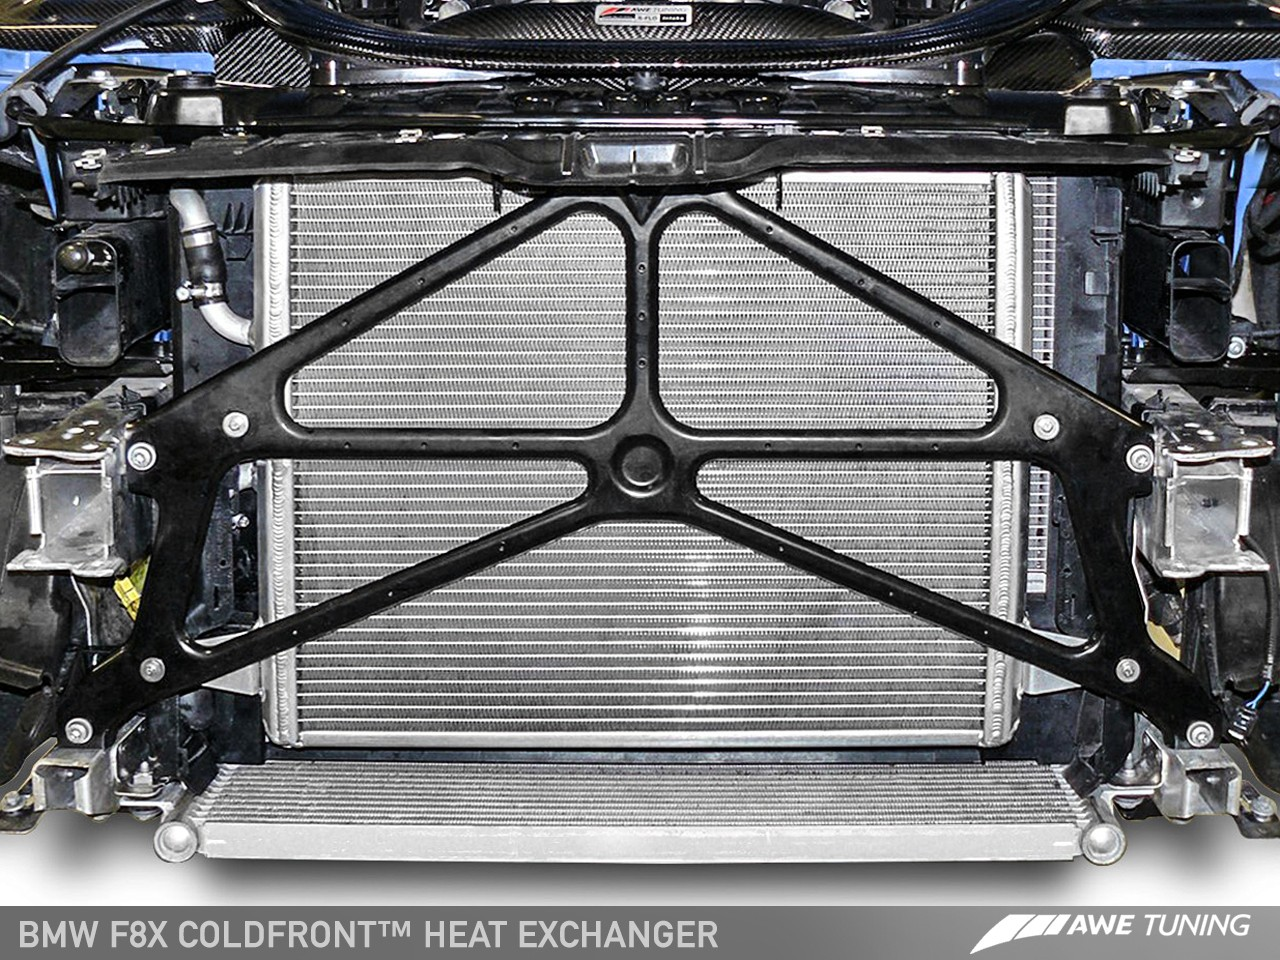 AWE Tuning BMW F8X M3/M4 Coldfront™ Heat Exchanger